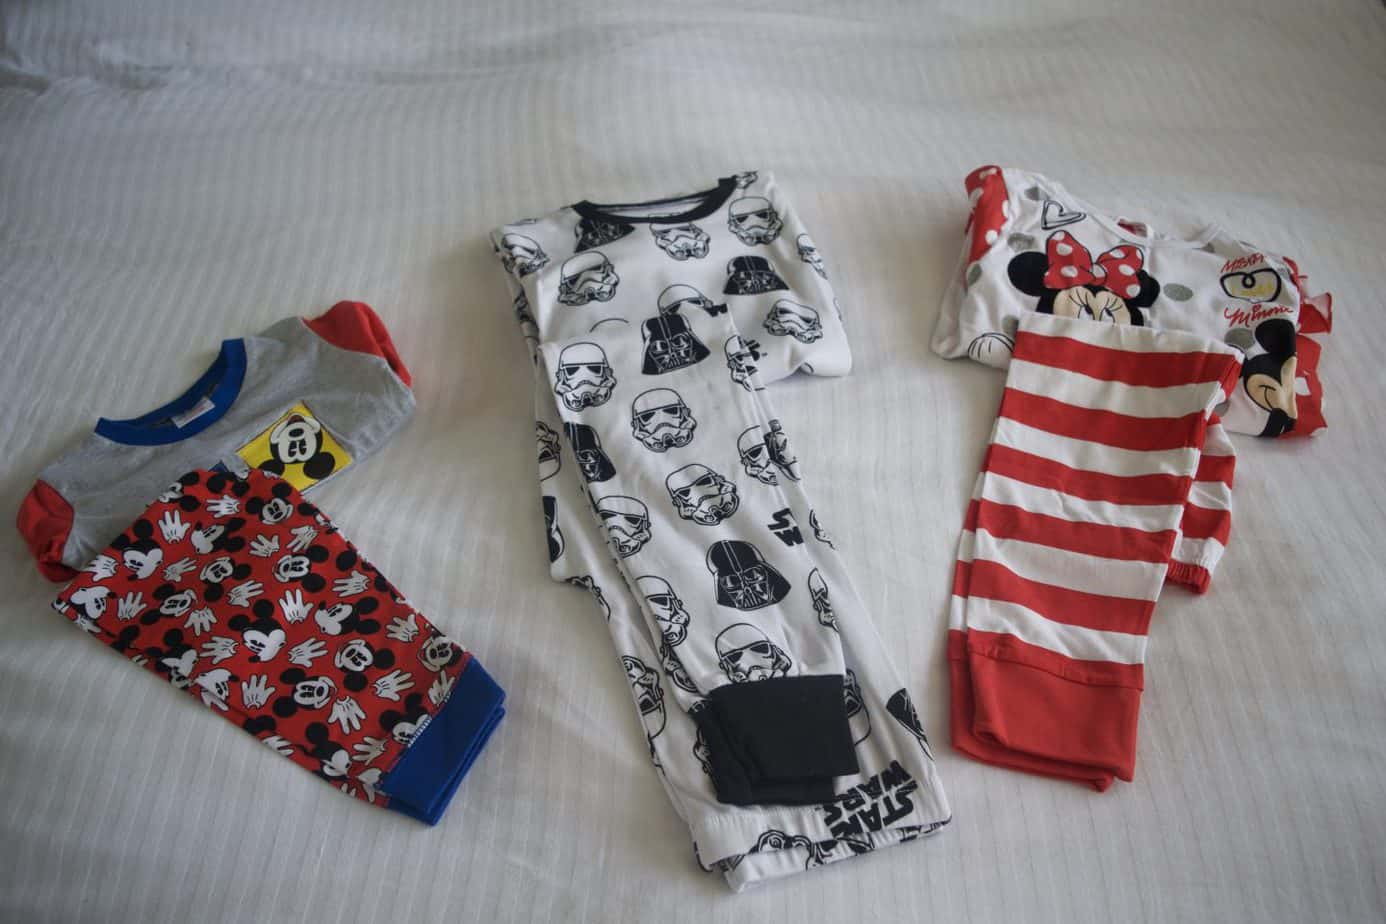 3 sets of PJ's for our Disney reveal box